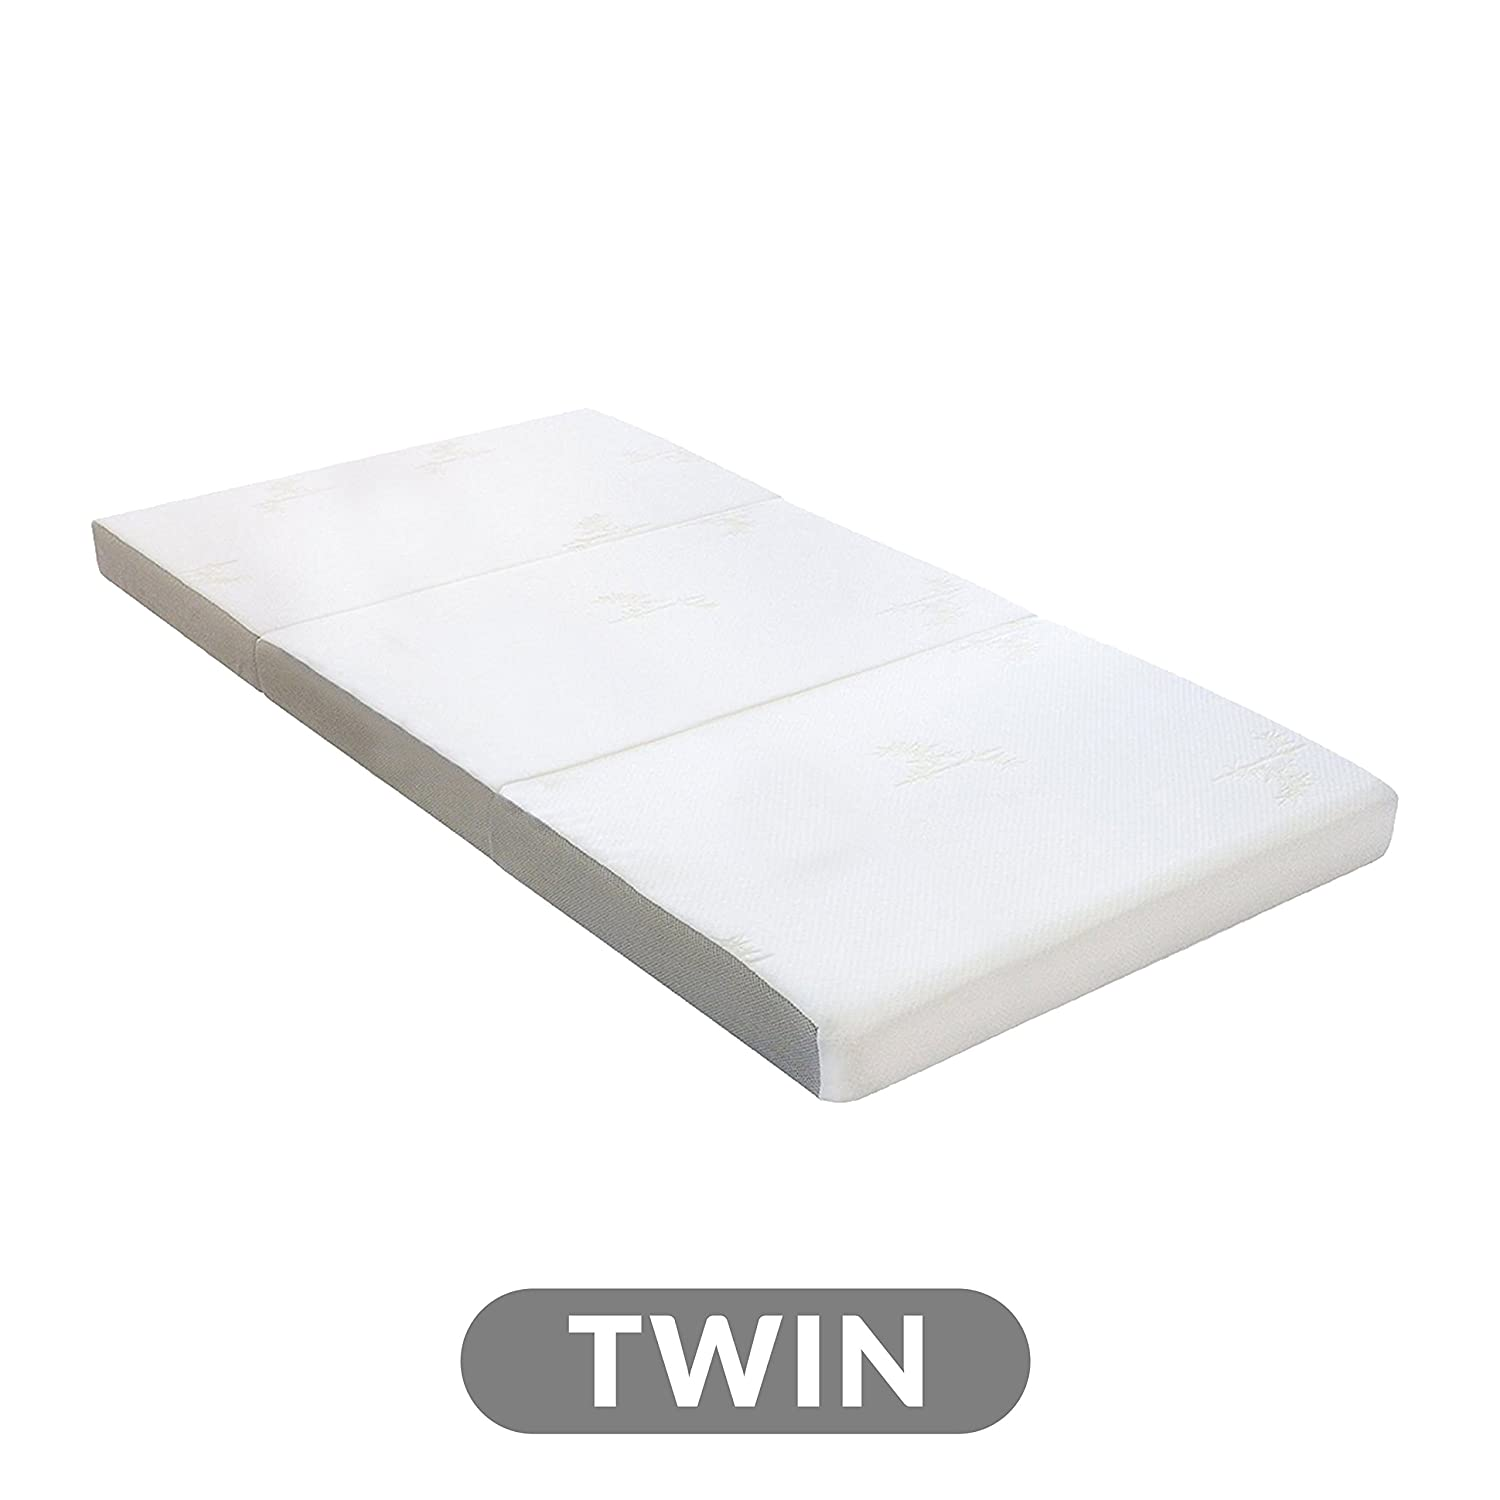 Milliard 4-Inch Foam Tri-fold Mattress with Ultra Soft Removable Cover with Non-Slip Bottom MIL-HK612-4